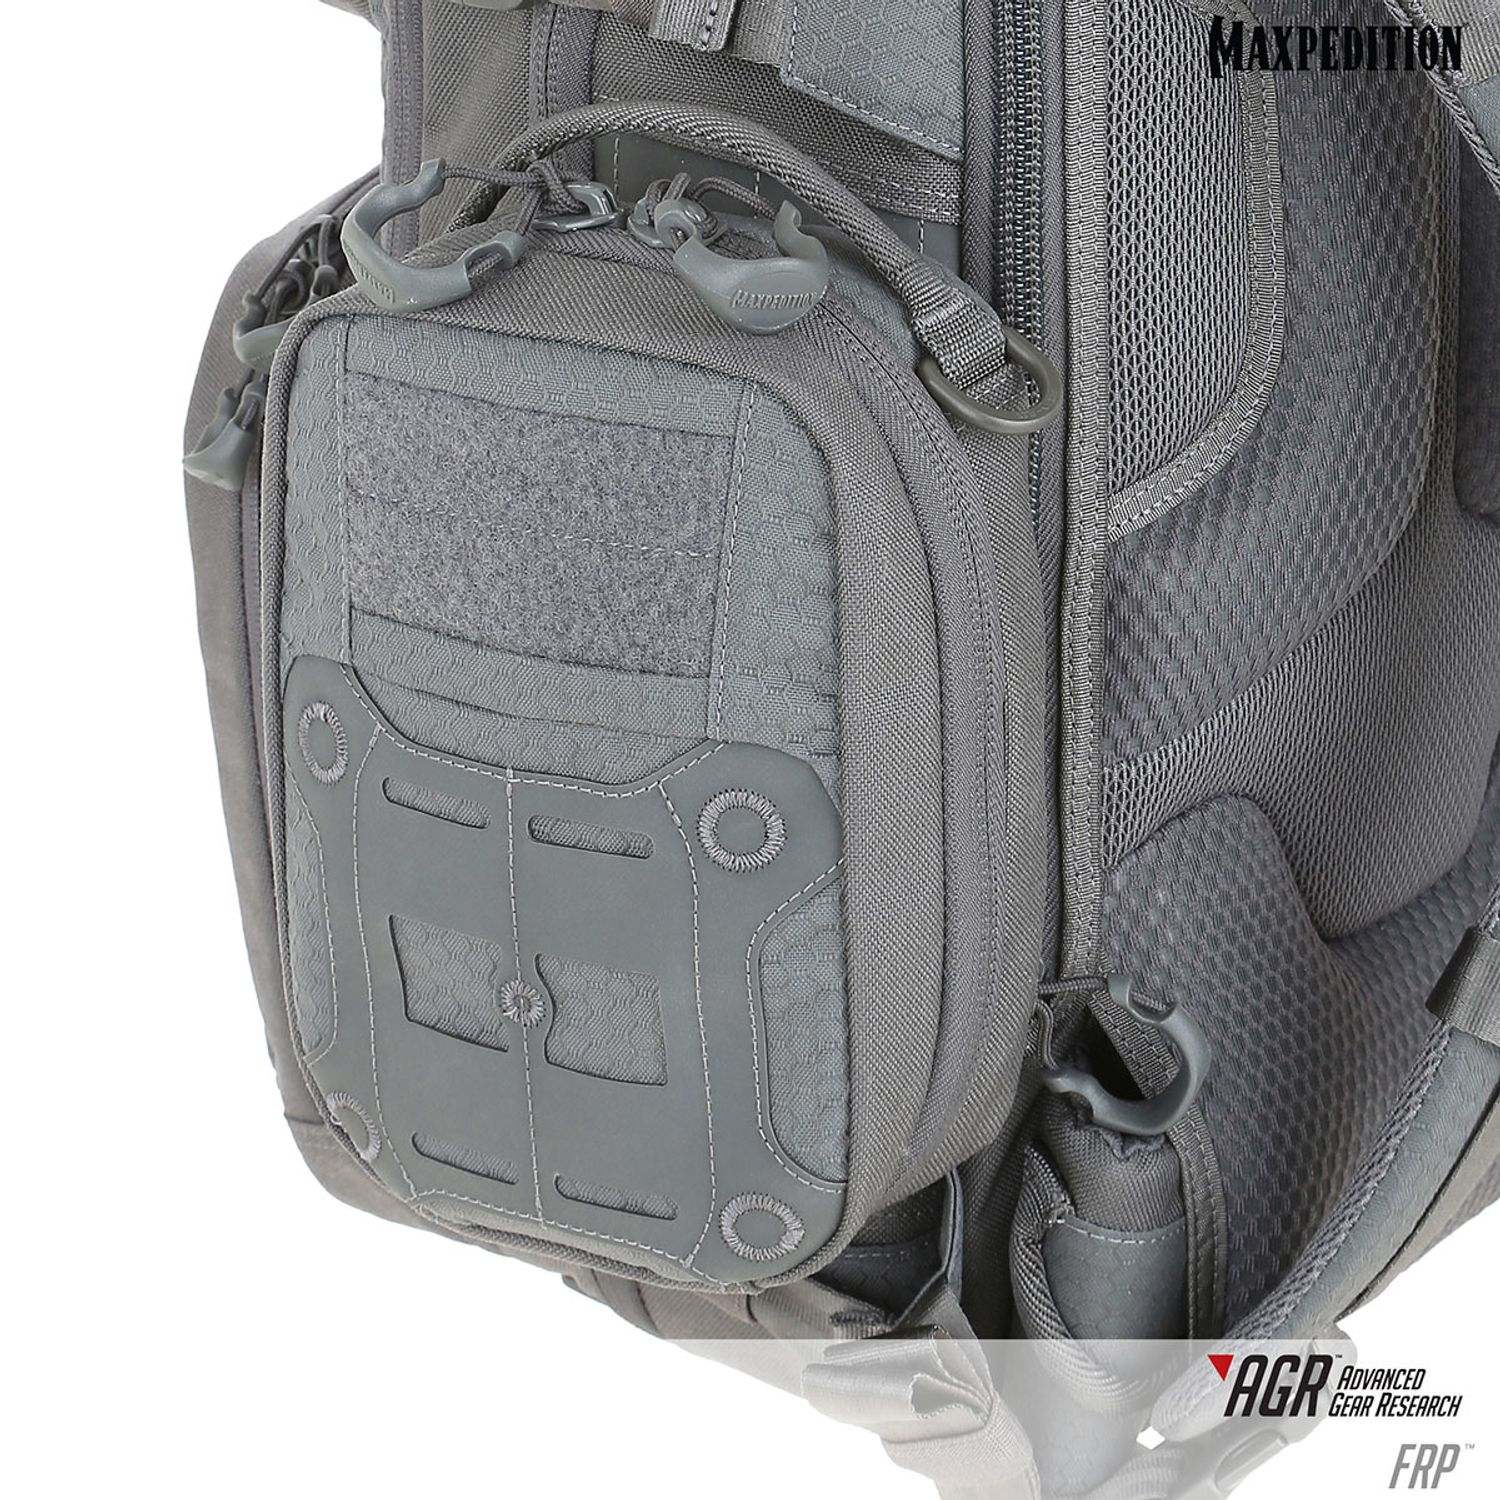 Maxpedition FRP First Response Pouch Black  FRPBLK